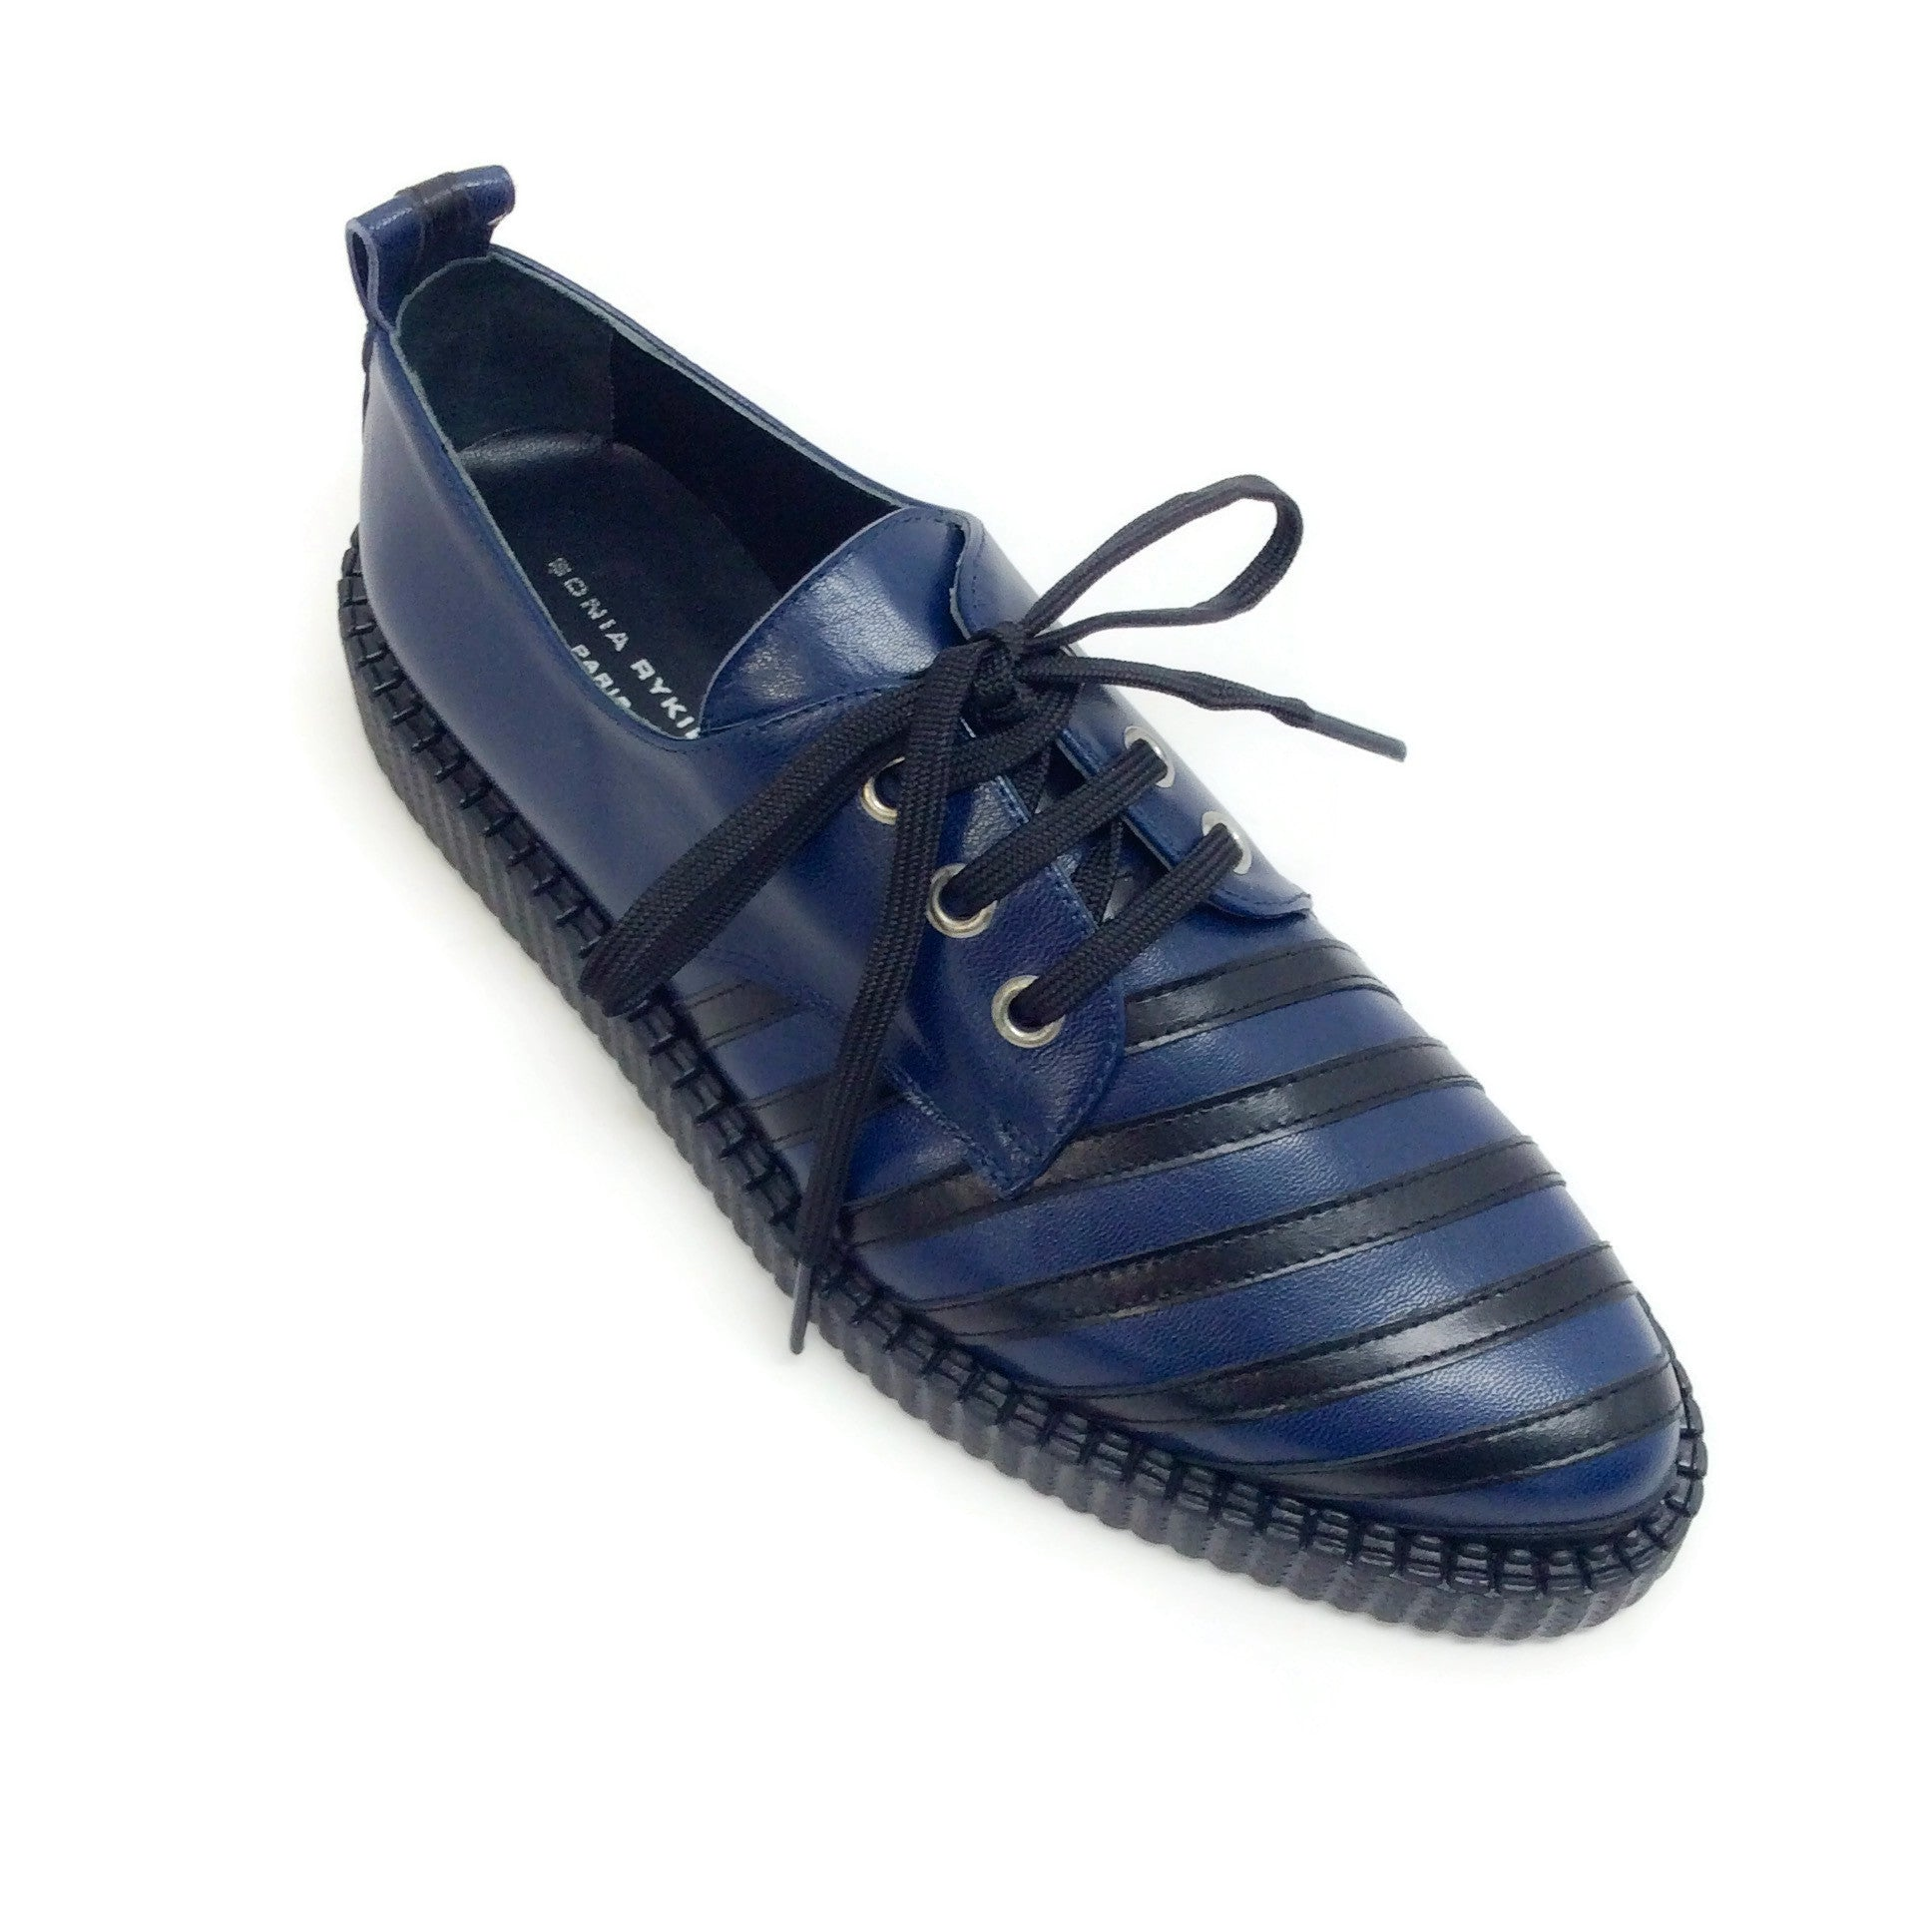 Sonia Rykiel Navy / Black Stripe Detail Oxfords